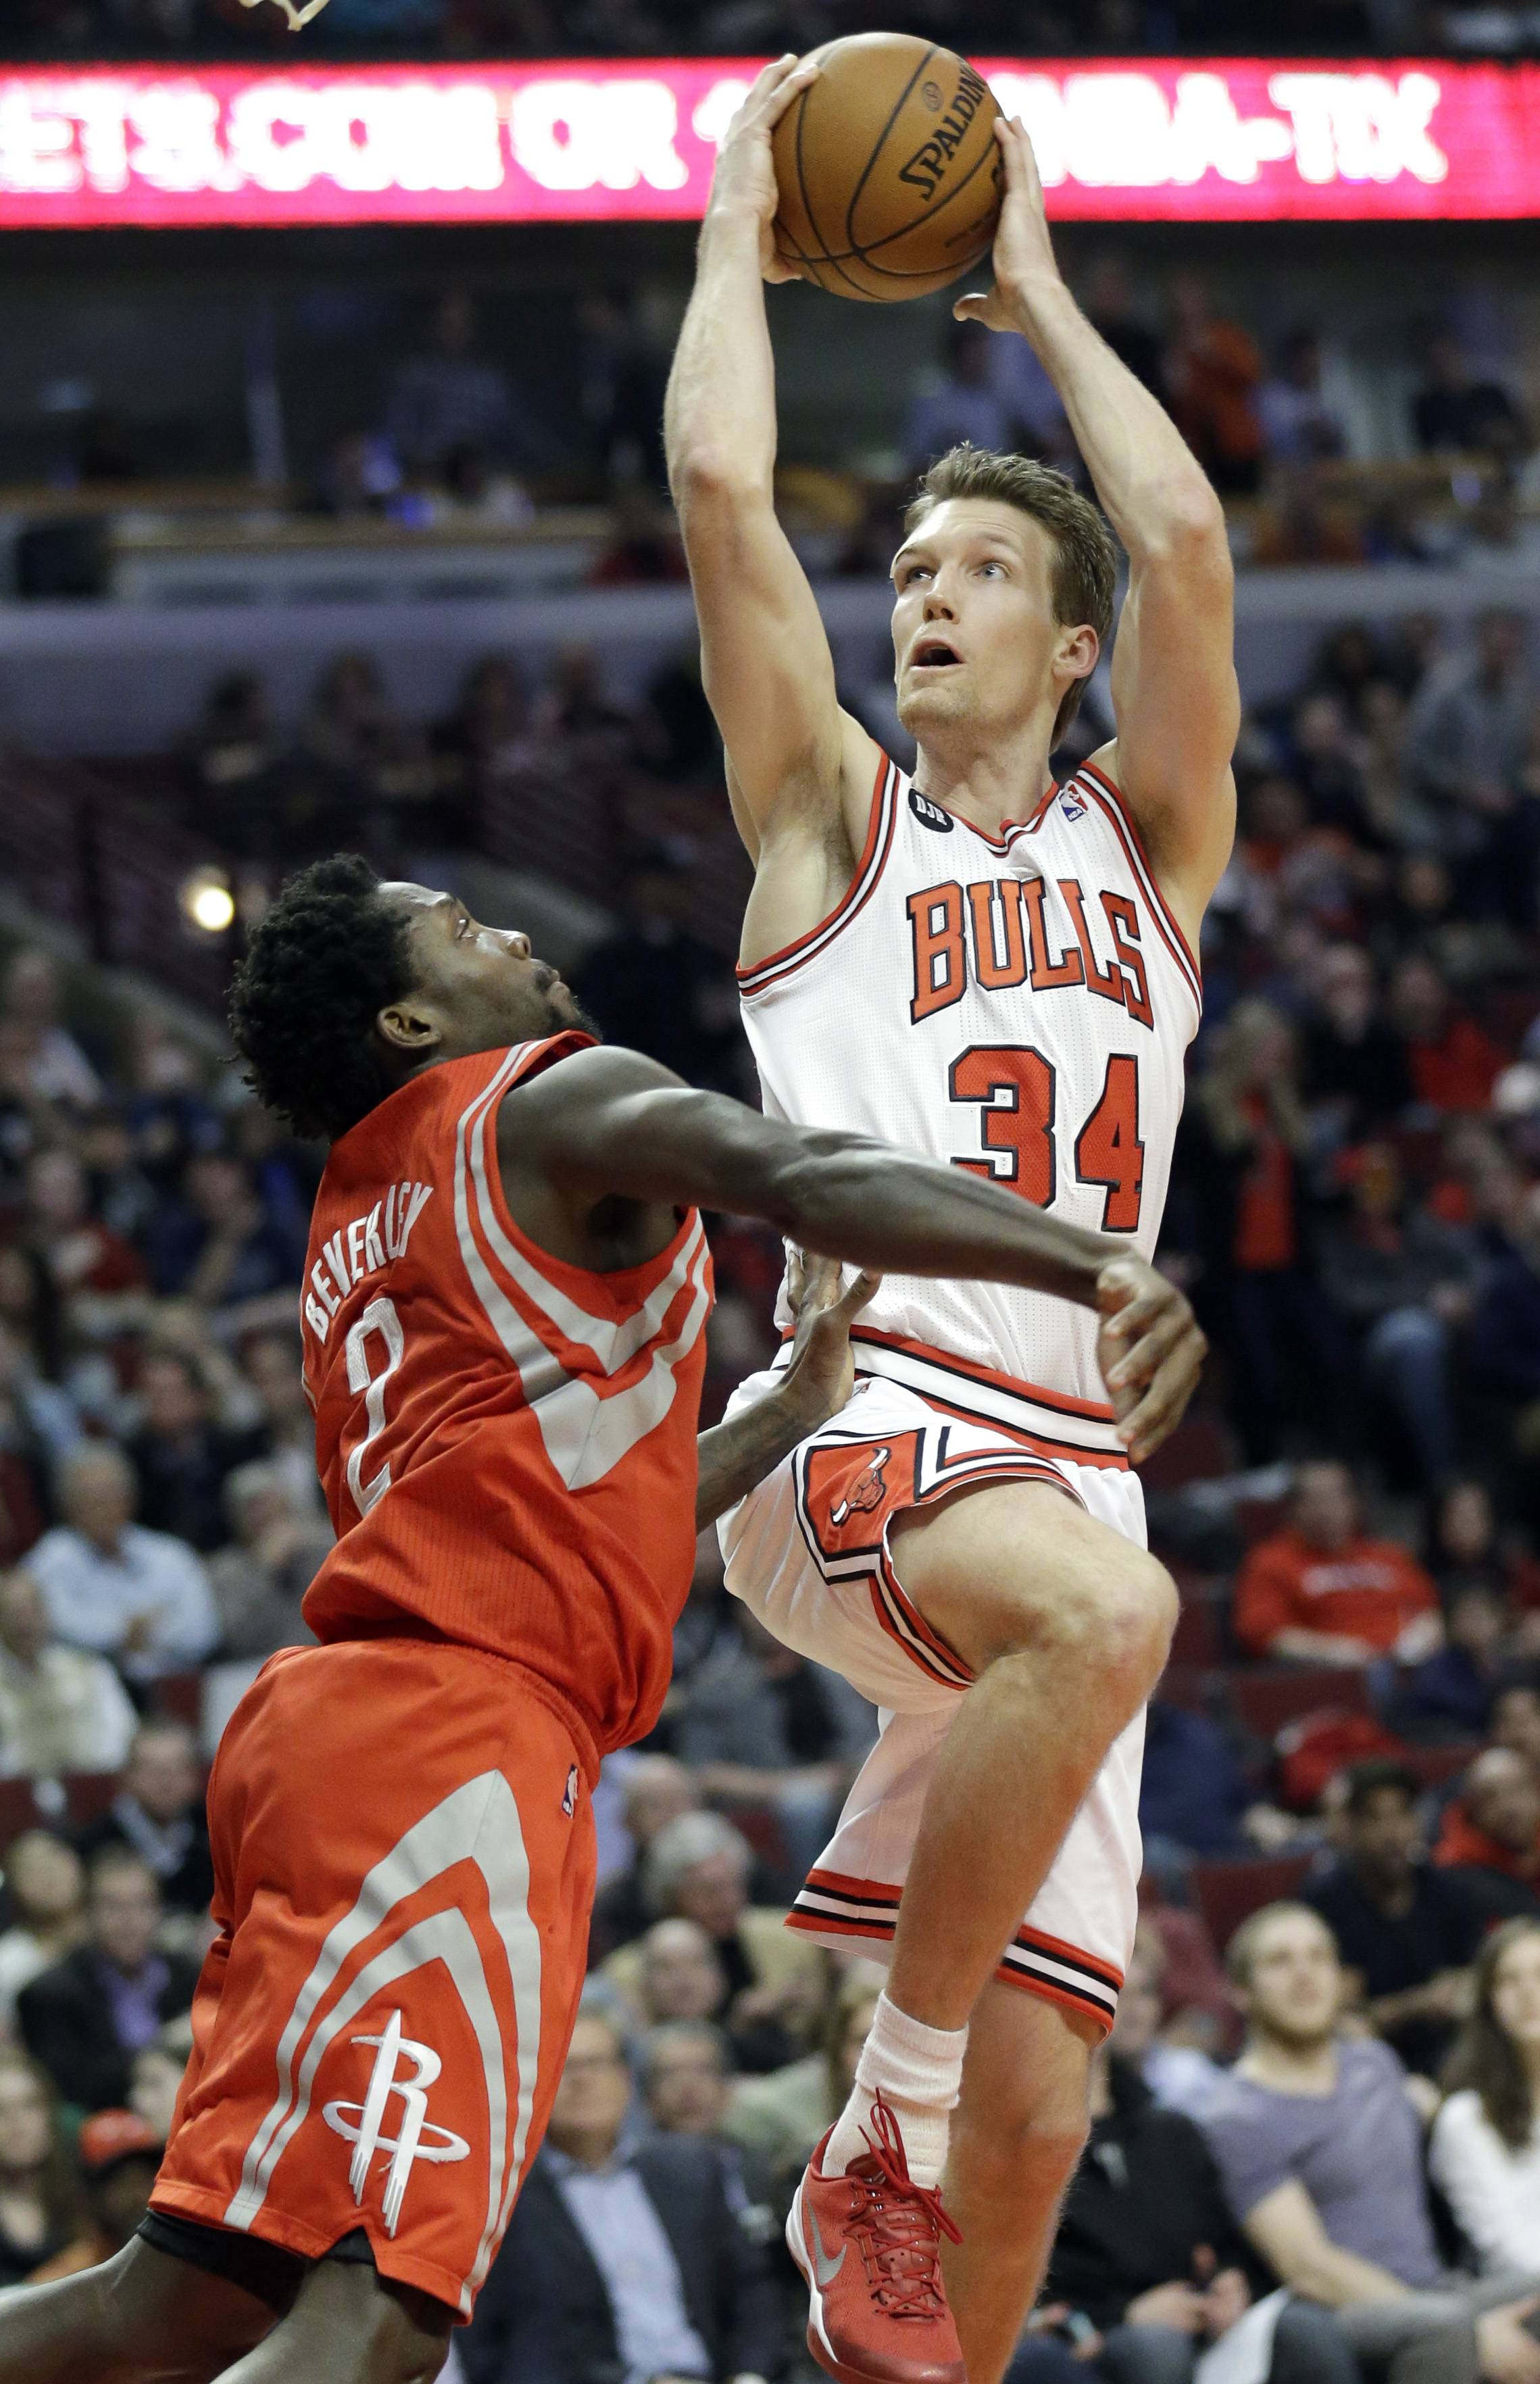 Wearing a bandage over his right eye after taking 10 stitches, Bulls guard Mike Dunleavy drives to the basket against Houston's Patrick Beverley in the second half Thursday night.